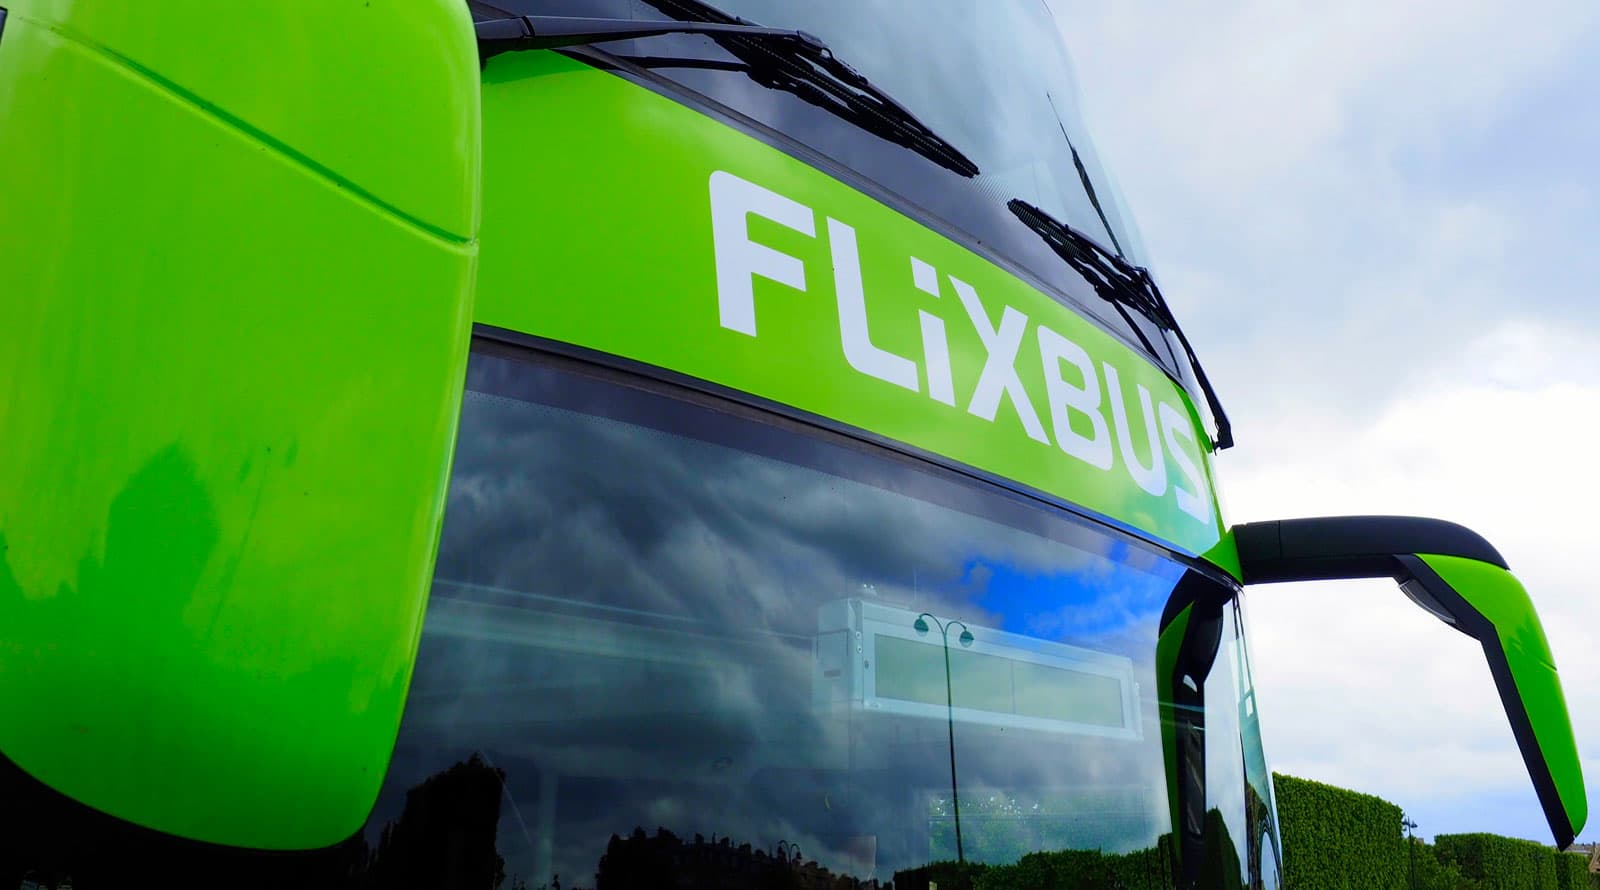 flixbus une nouvelle ligne forbach lyon et des promos. Black Bedroom Furniture Sets. Home Design Ideas